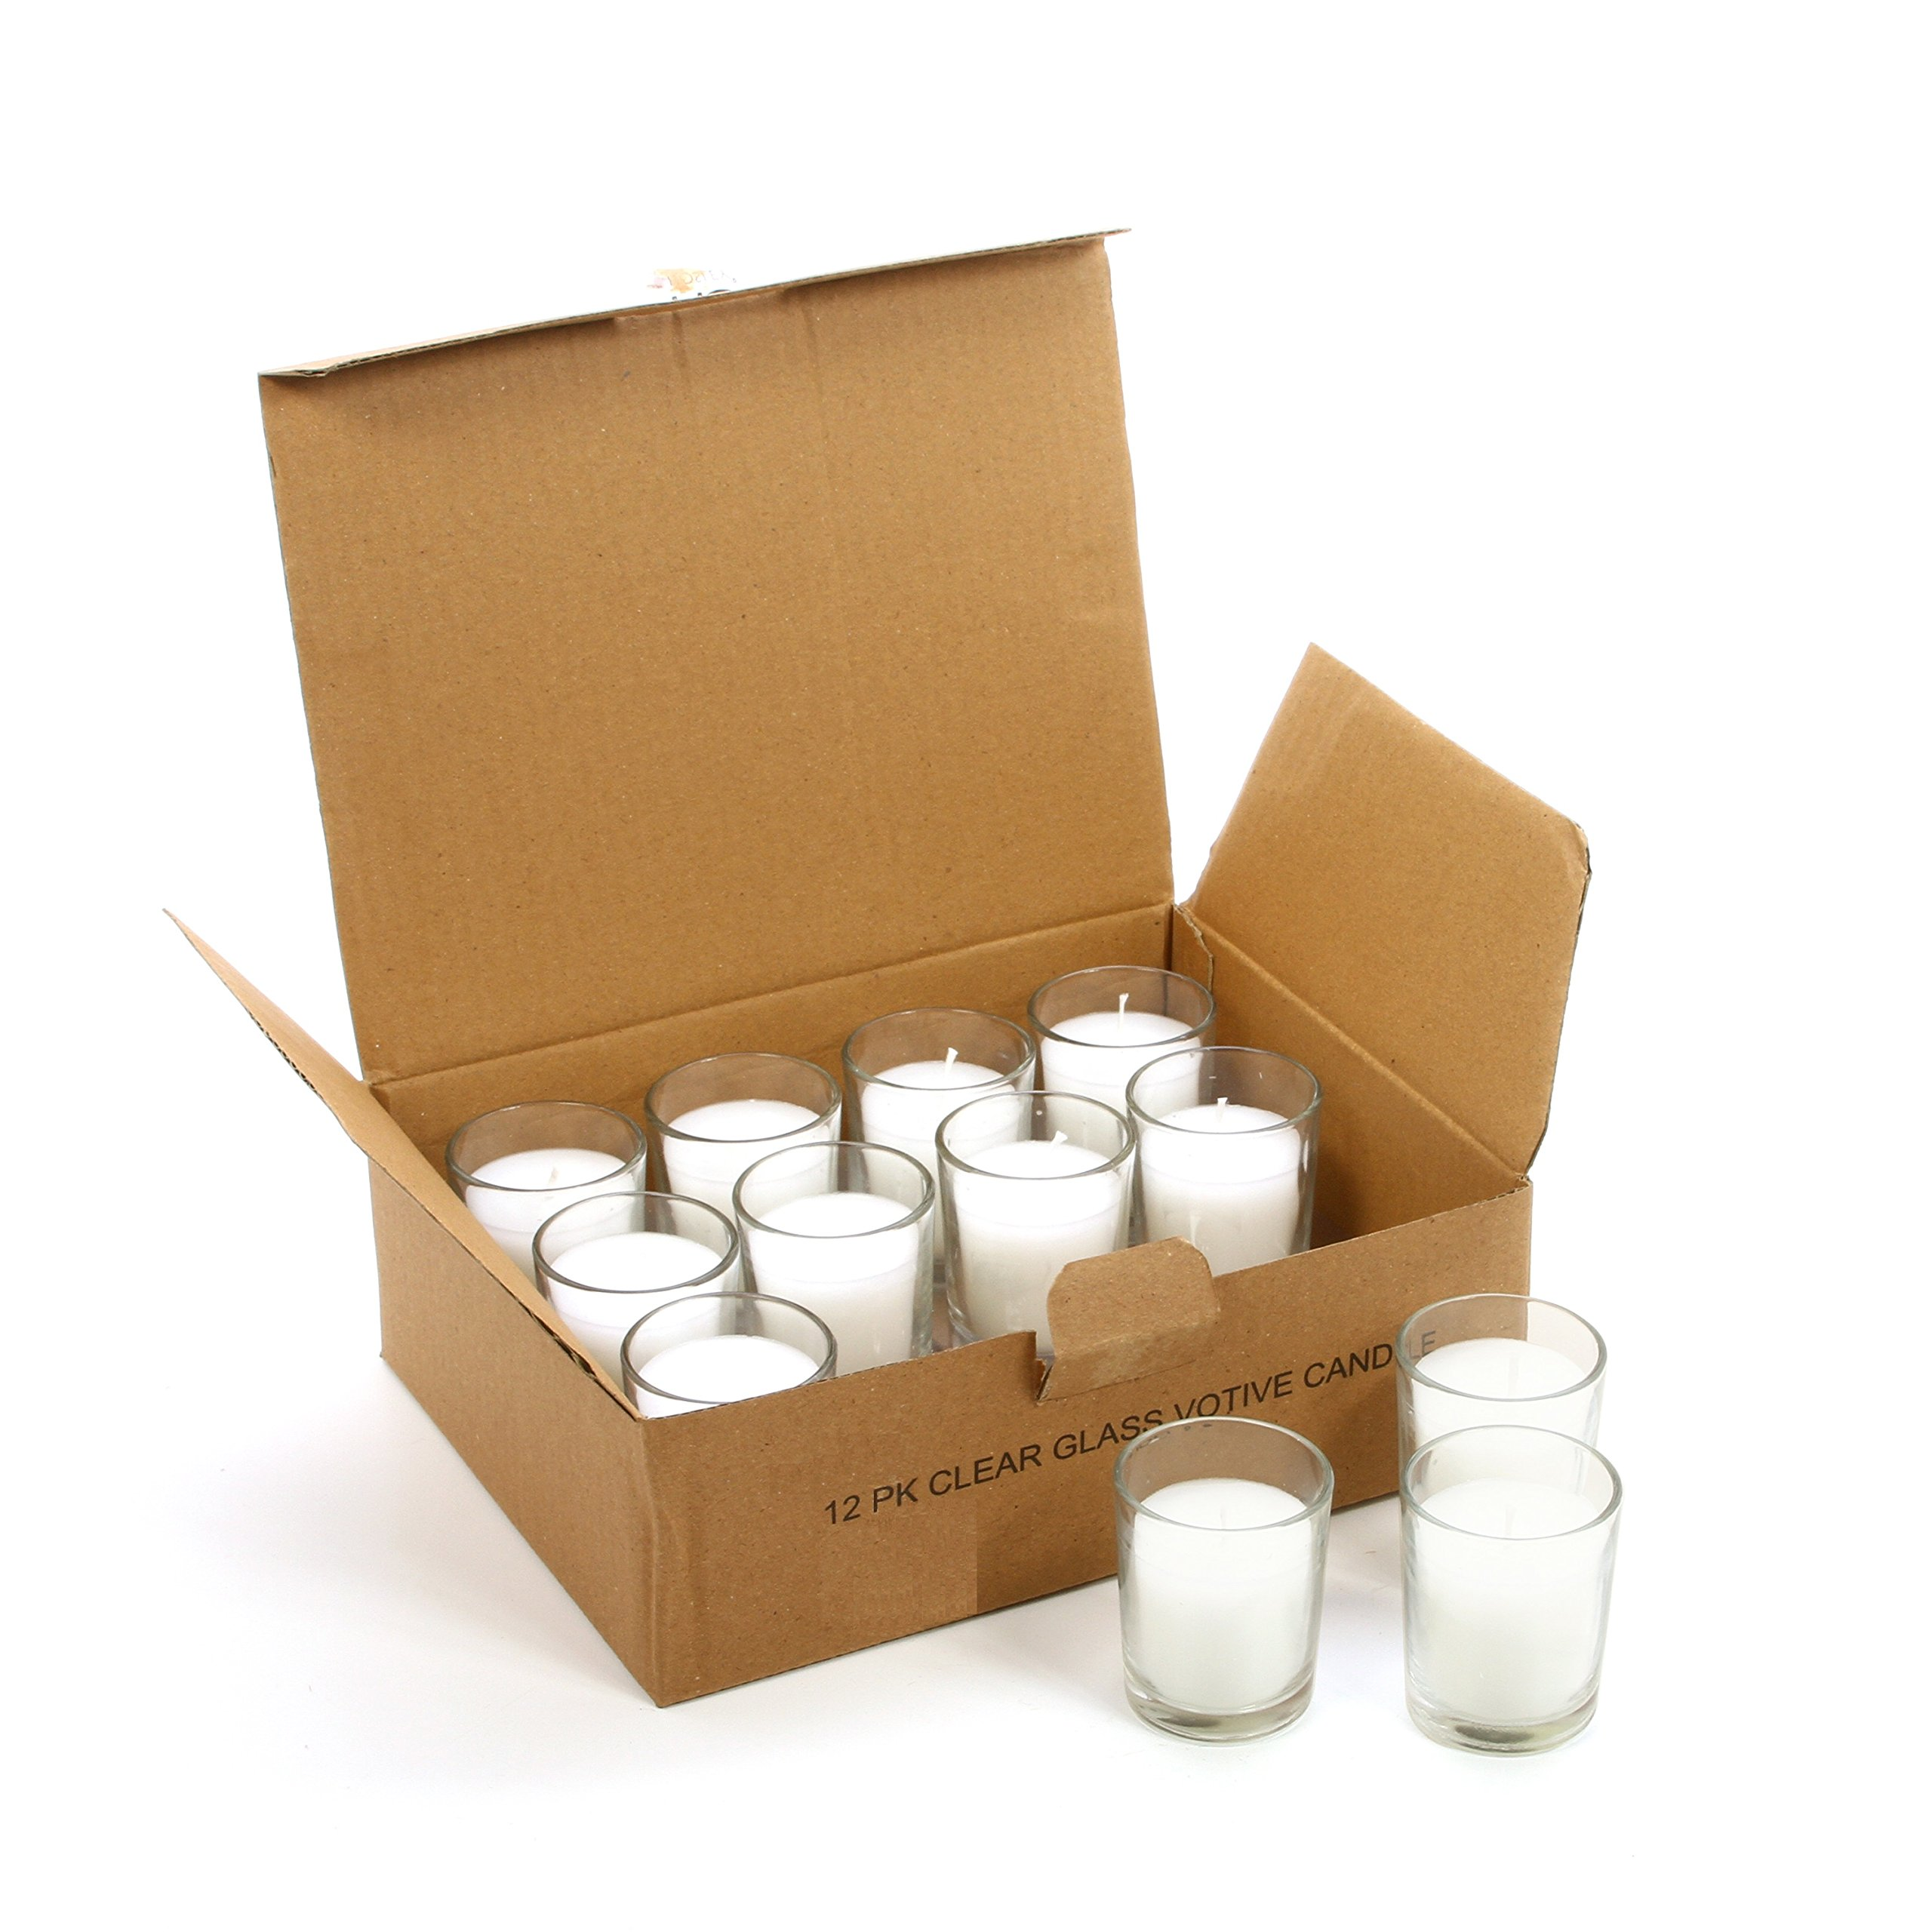 Hosley White Set of 24 Unscented Clear Glass Wax Votive Filled Candles. Hand Poured Vegetable Soy Wax Blend, up to 15 Hour Burn Time. Ideal Gift Use Weddings, Aromatherapy, Party Favor O3